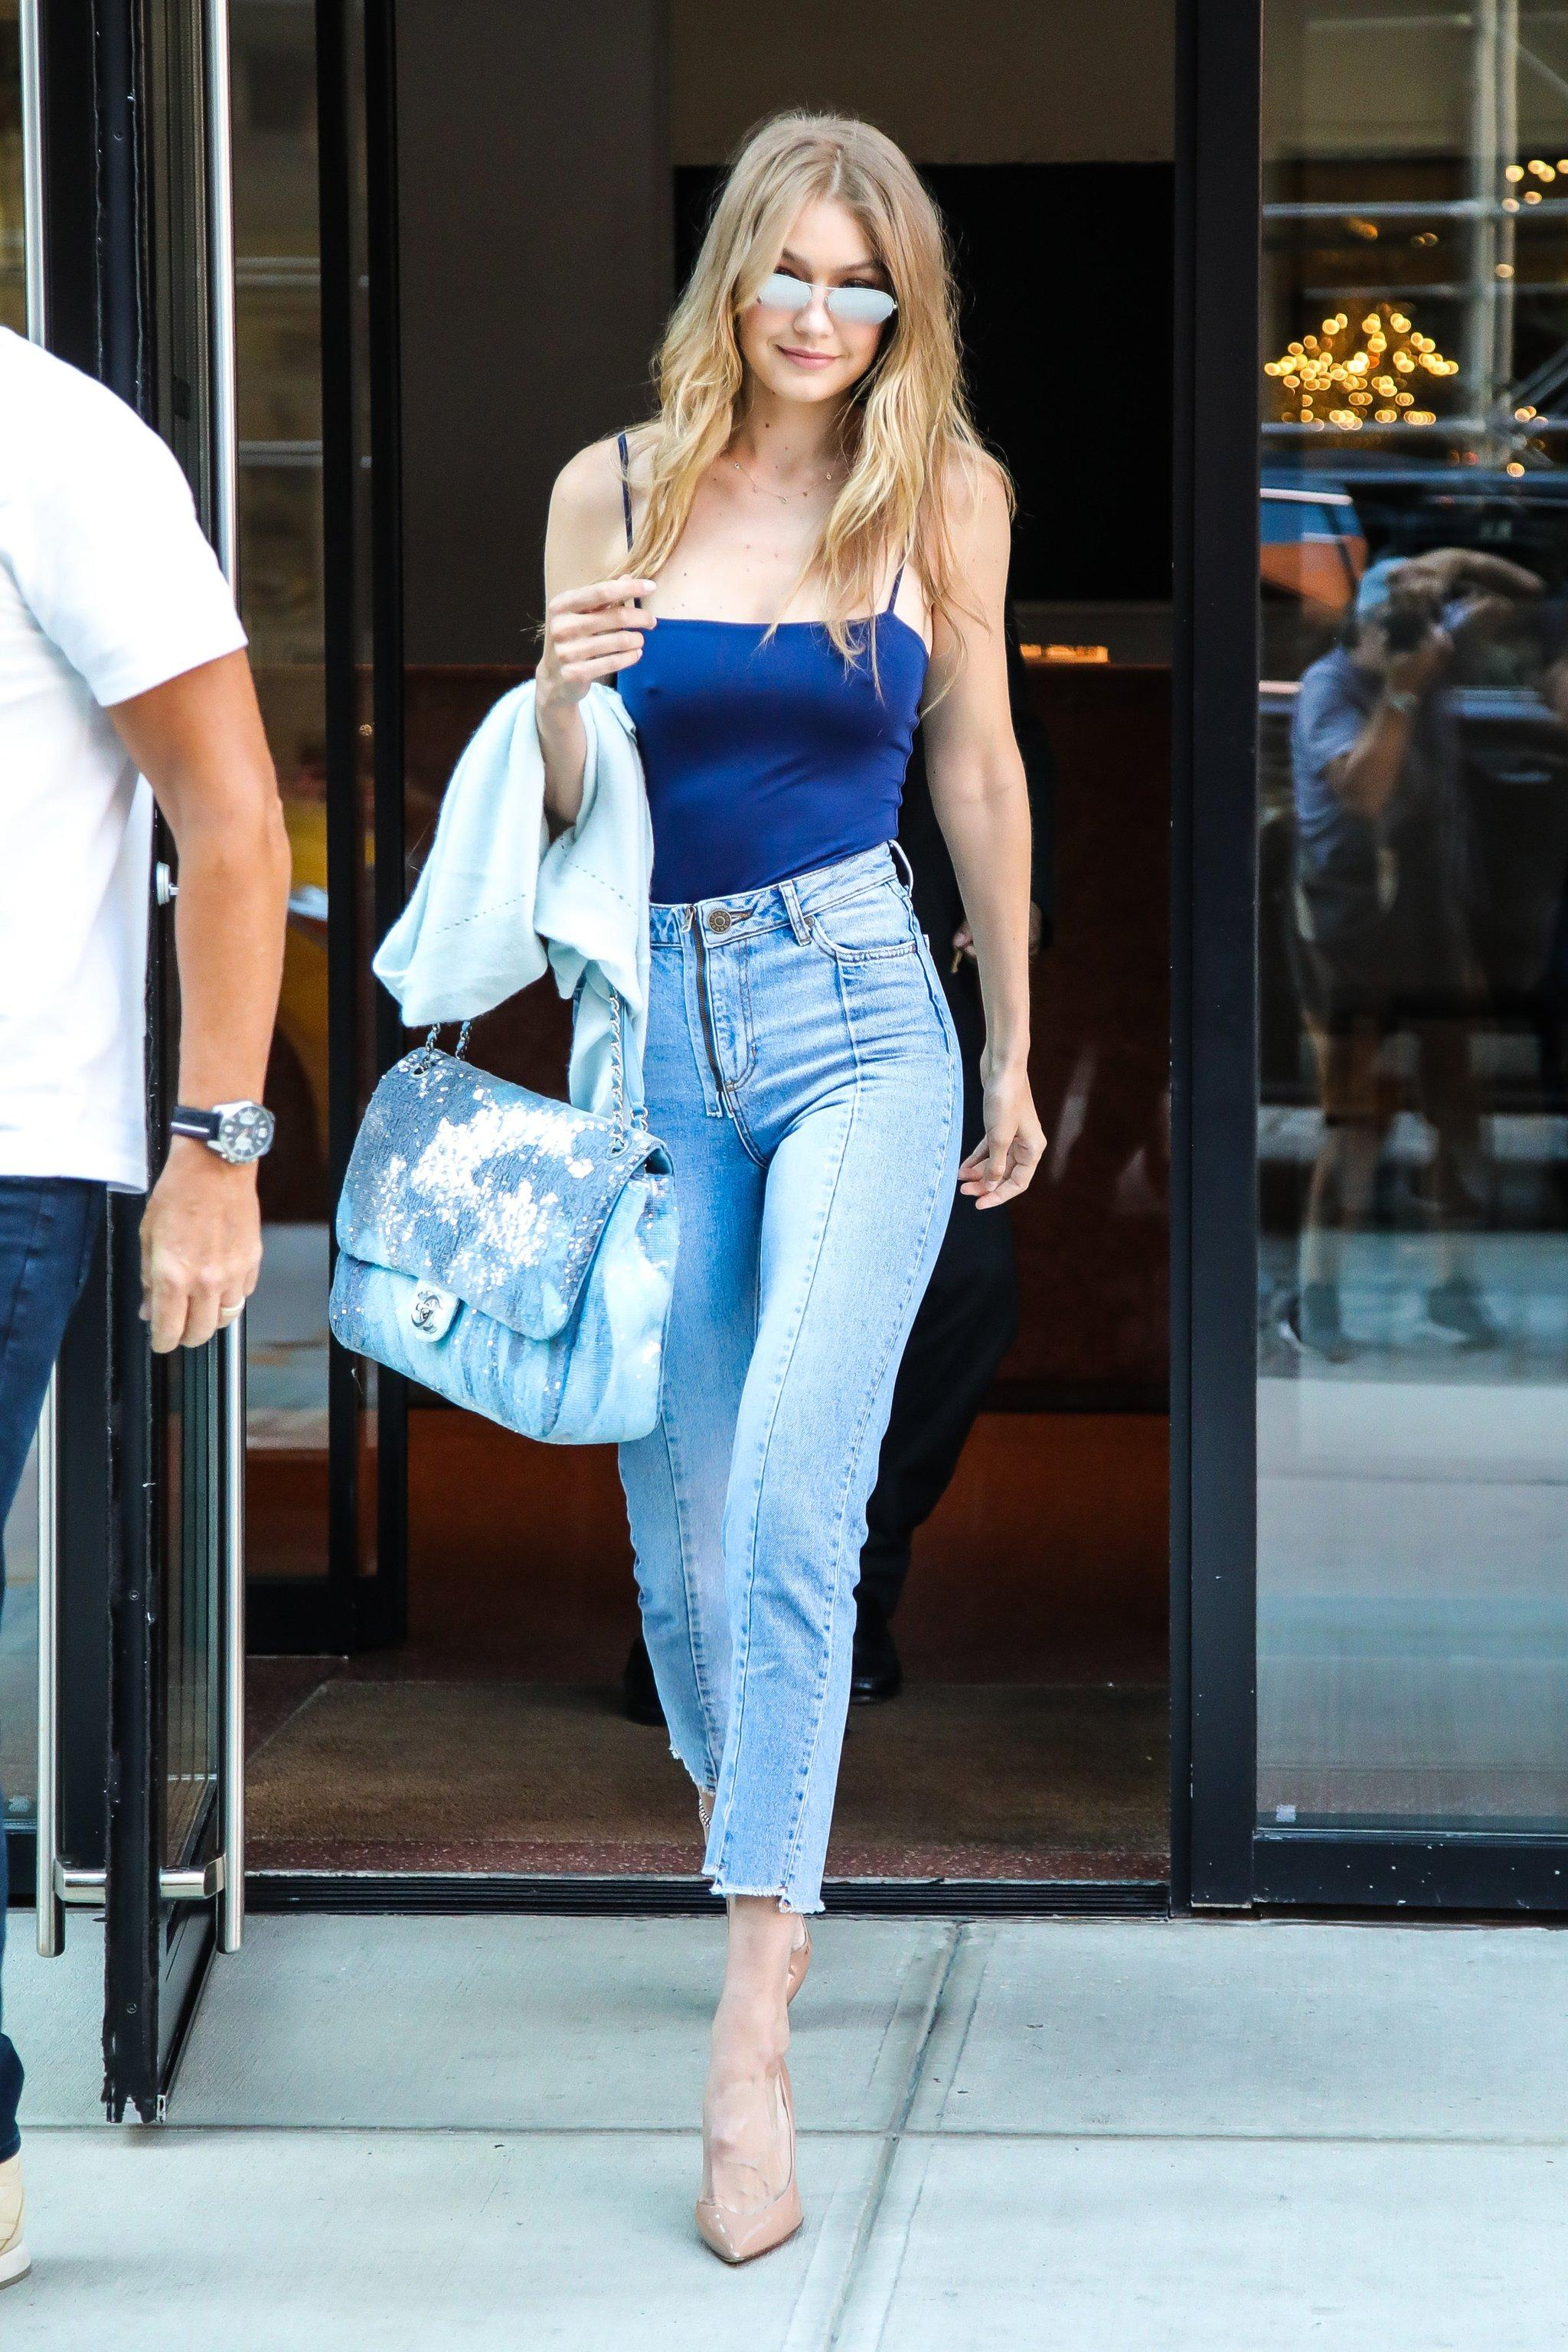 Gigi Hadid's New Chanel Bag Is Tie-Dyed With Sequins, and We're Totally  Buggin'